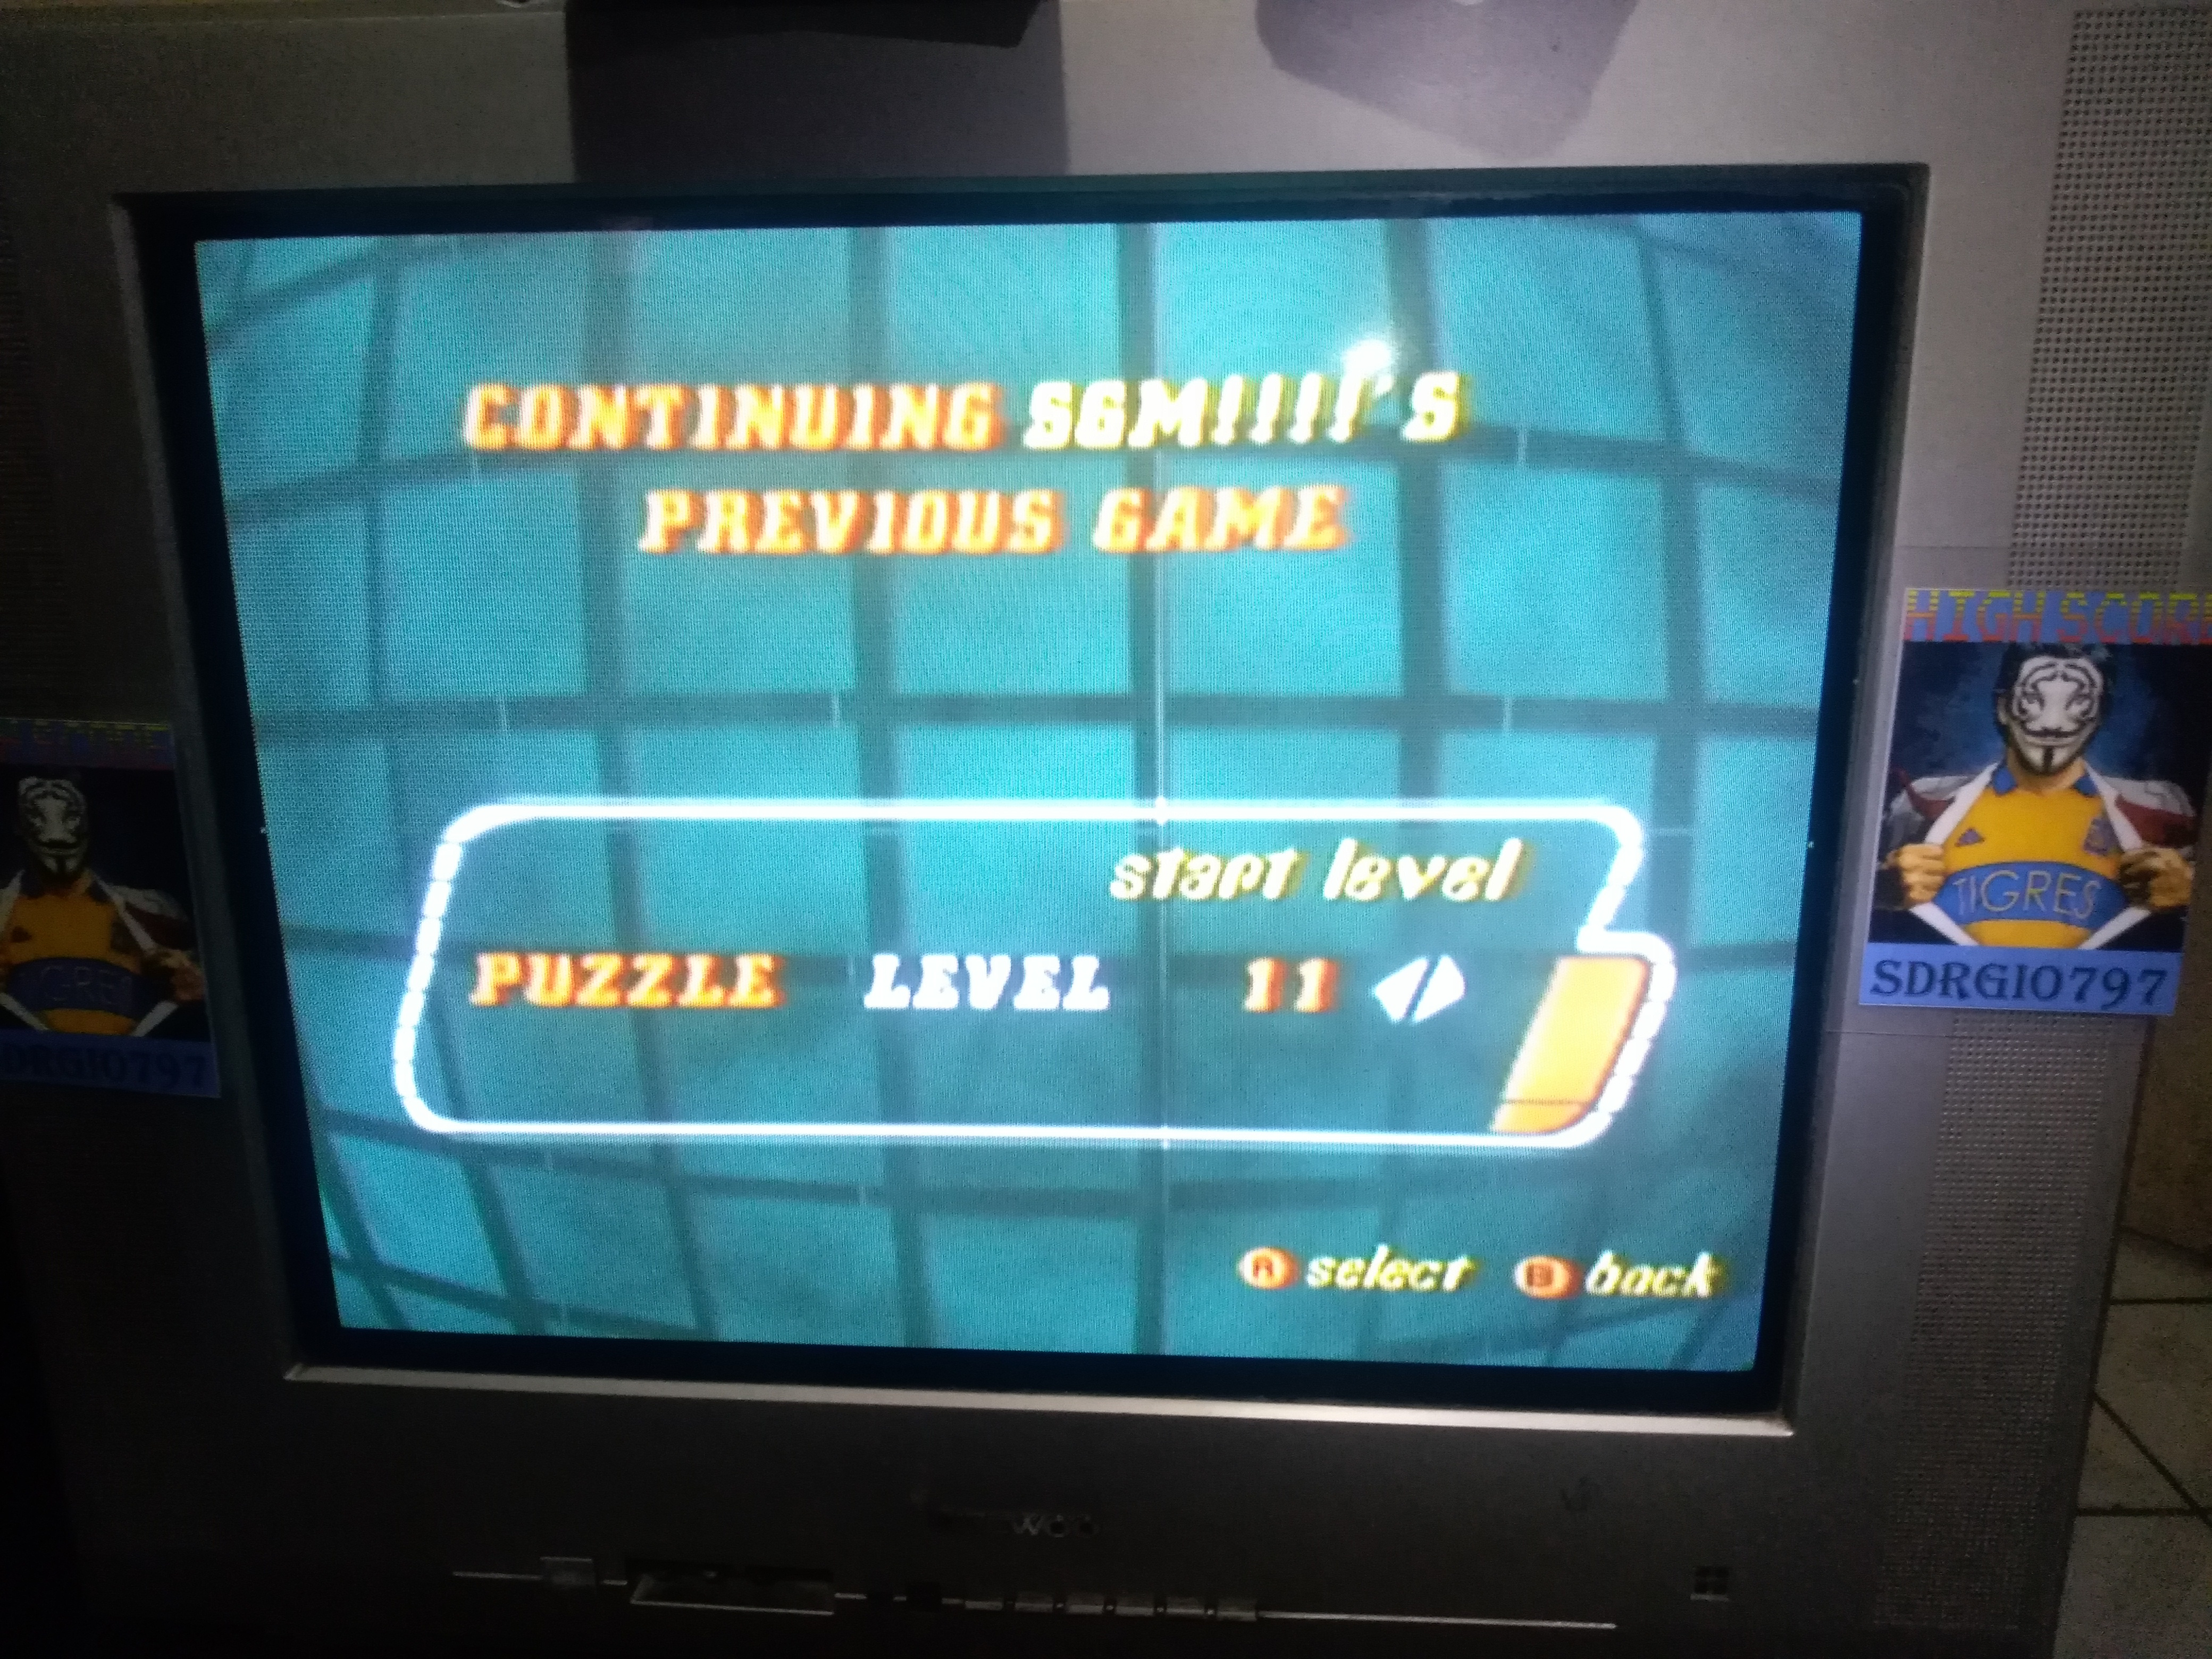 Sdrgio797: Tetrisphere: Puzzle (N64 Emulated) 20,800 points on 2020-08-08 21:15:47